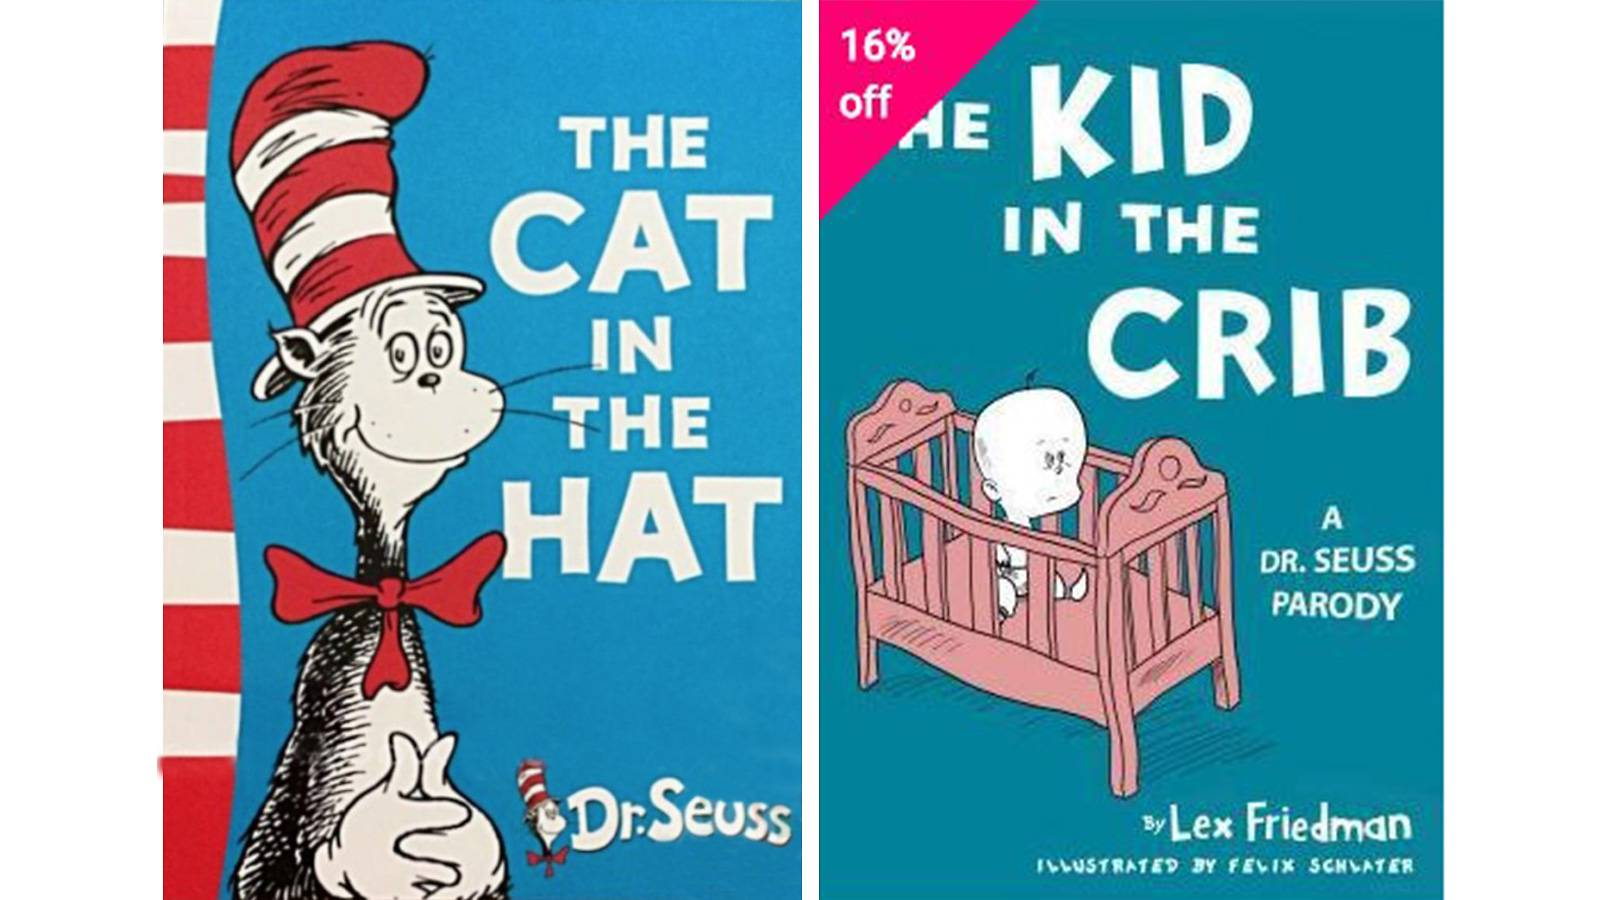 The Cat in The Hat & The Kid in the Crib